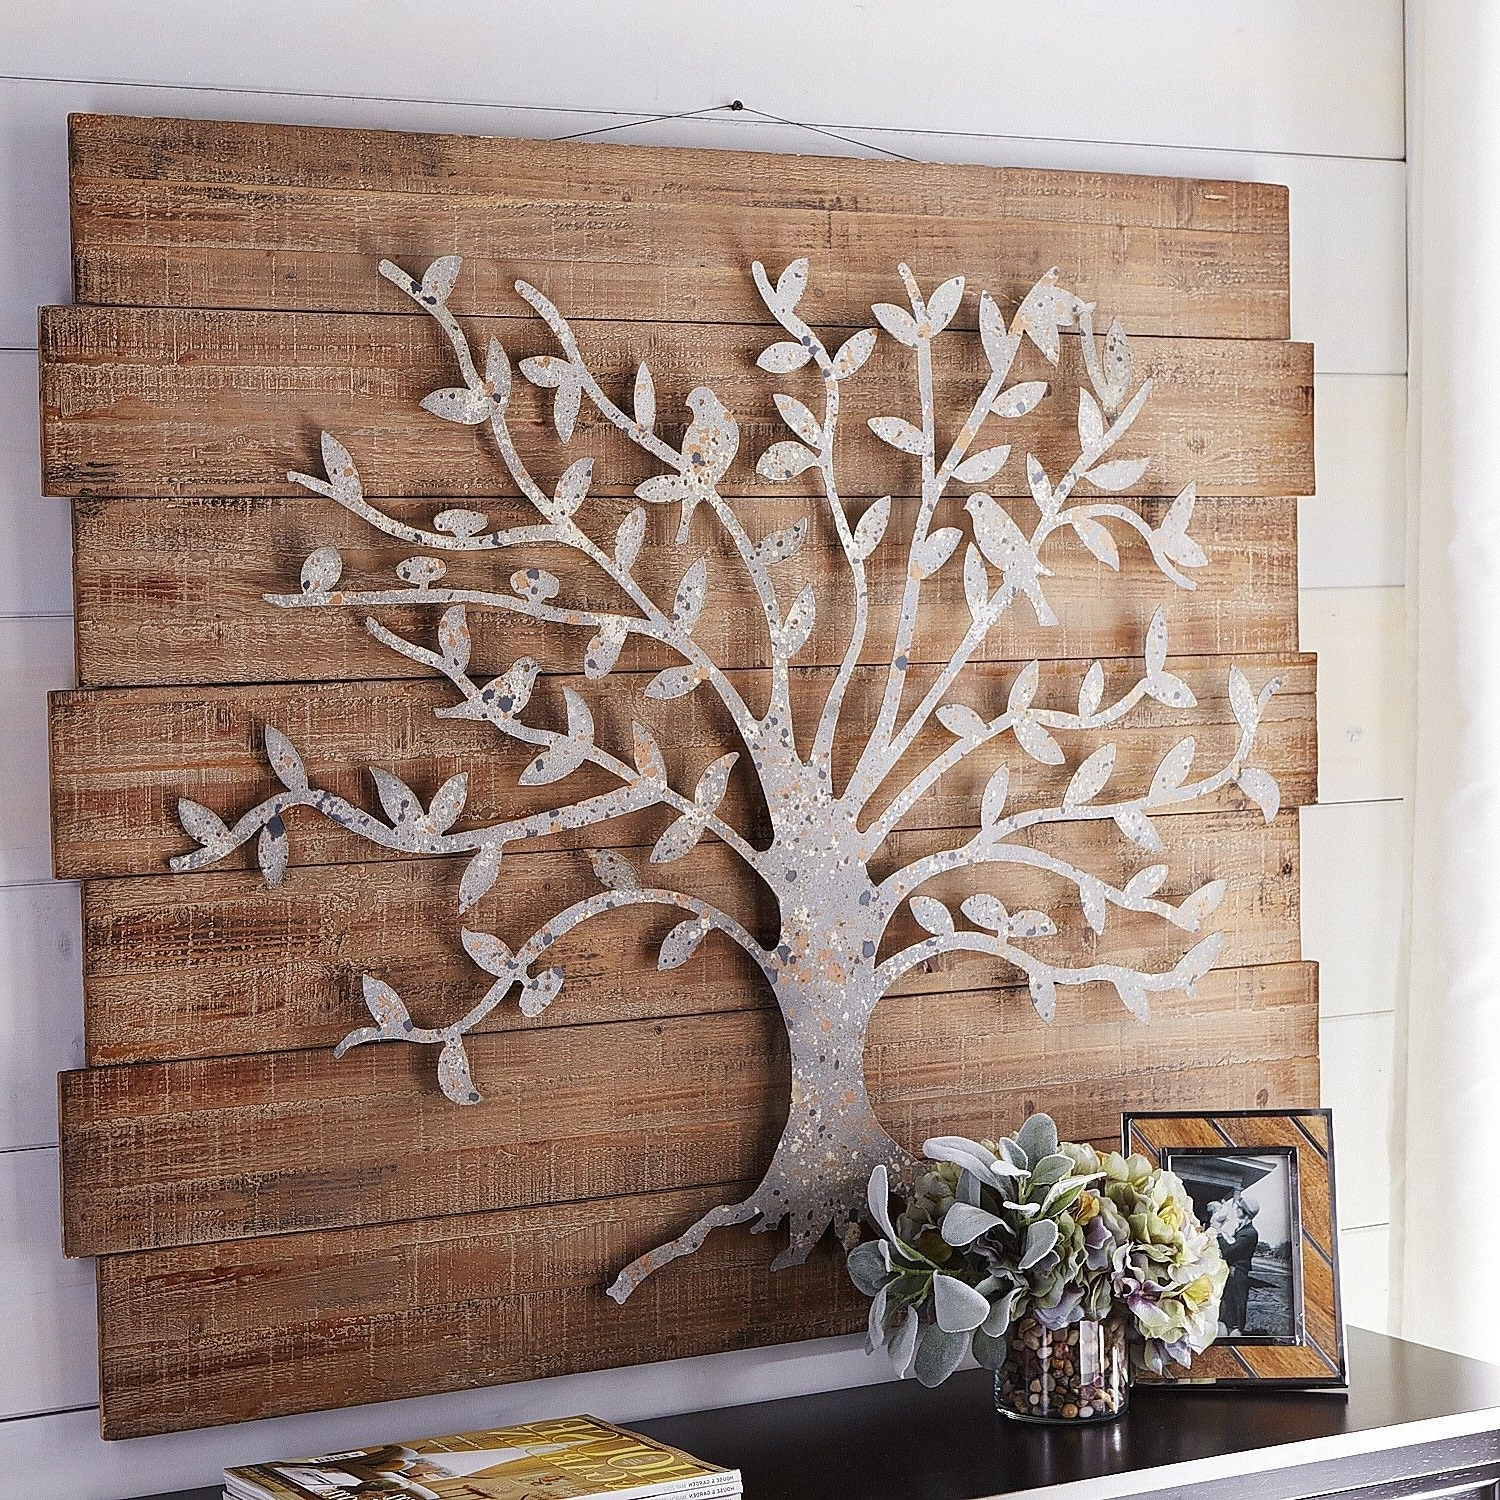 Pier 1 Imports Regarding Most Current Wood And Metal Wall Art (View 11 of 20)